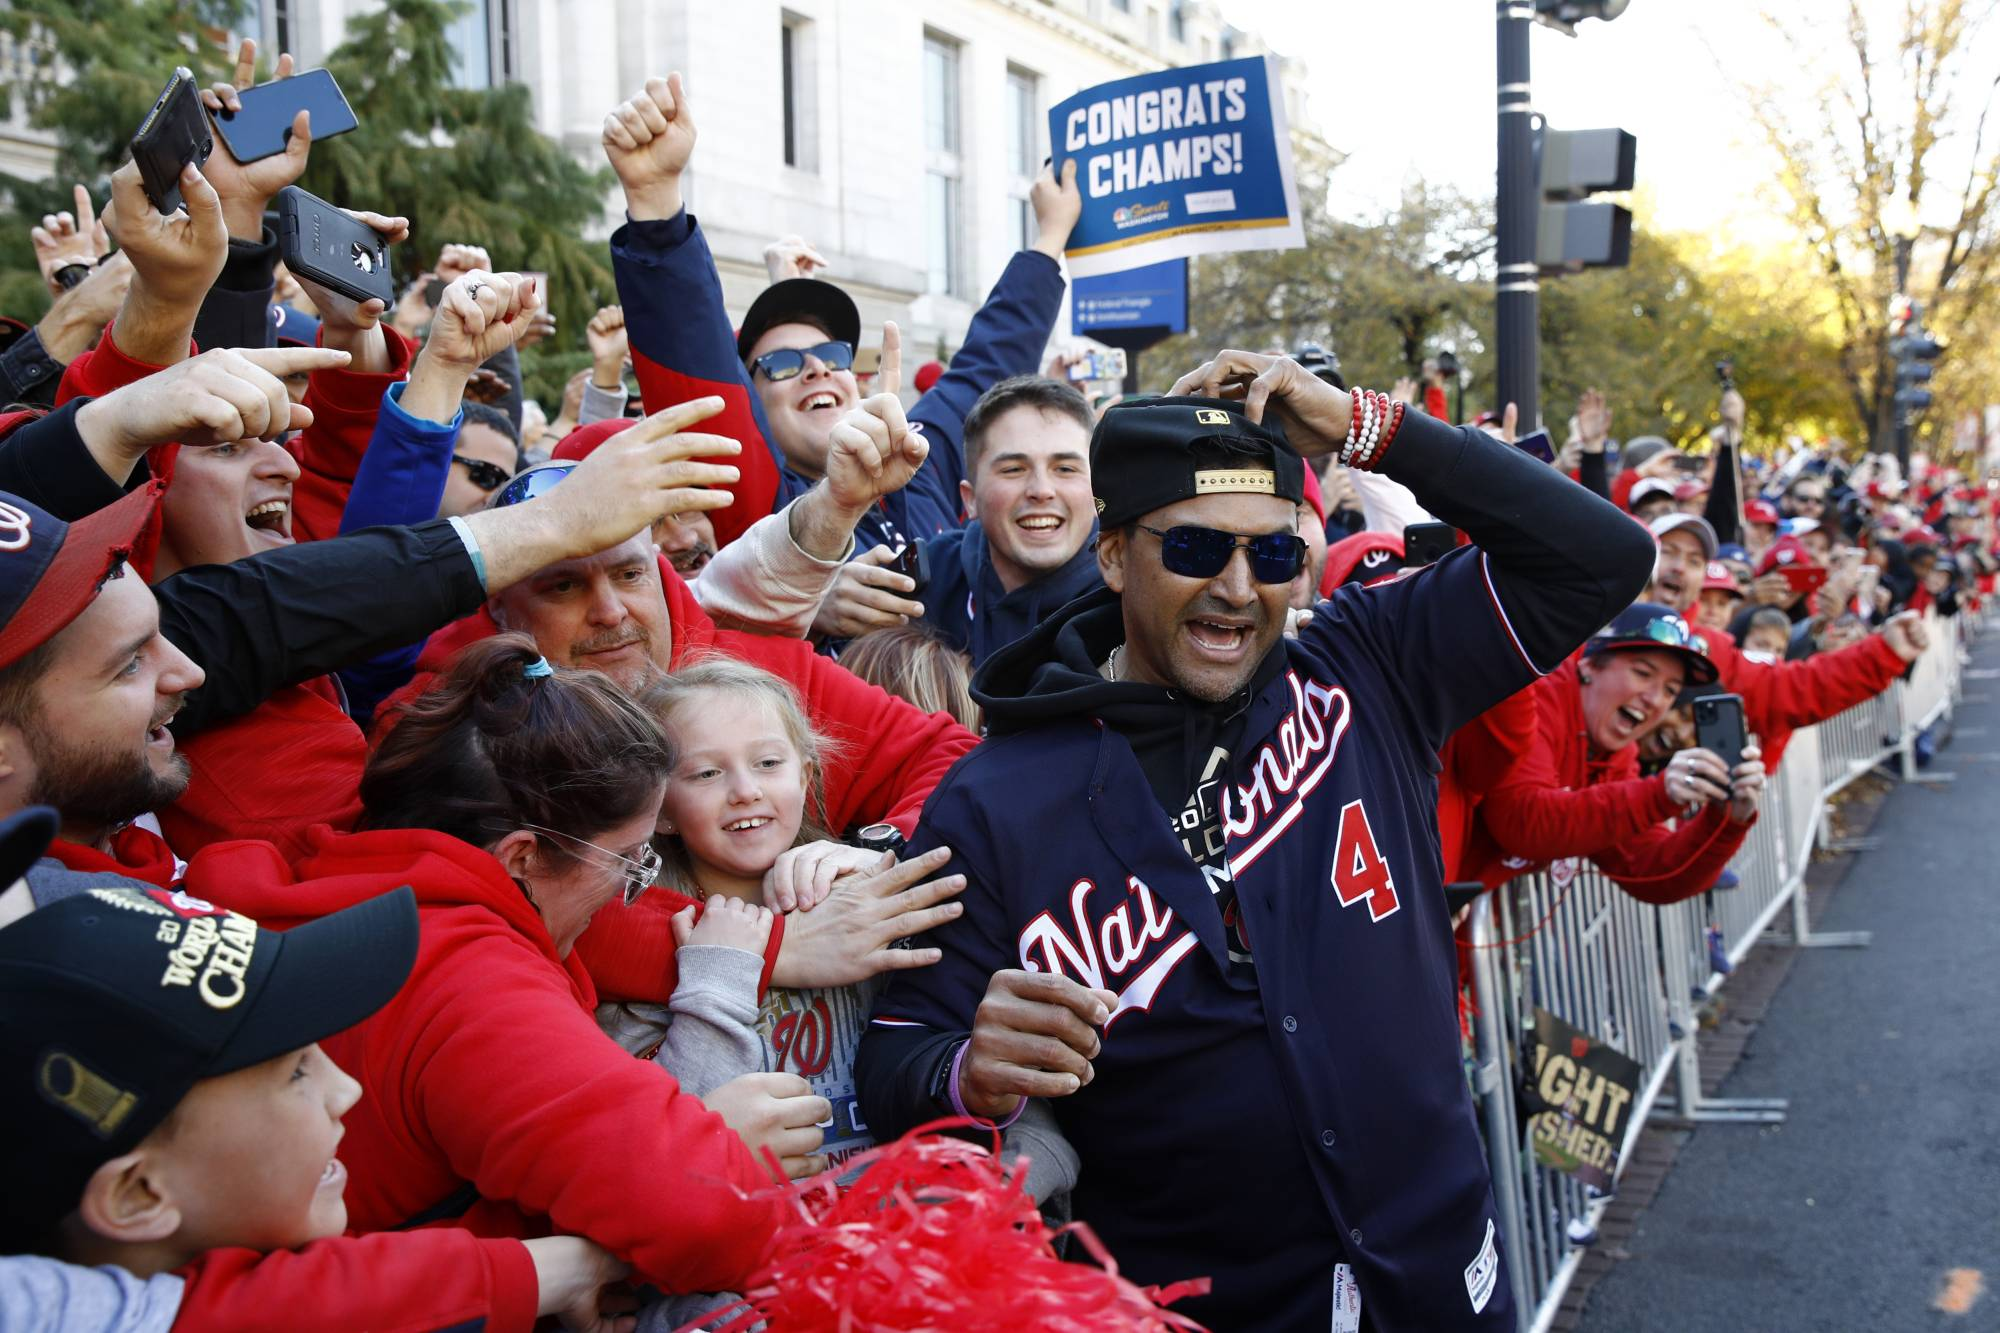 Nationals manager Dave Martinez celebrates with fans during the team's World Series celebration parade on Nov. 2 in Washington. | AP